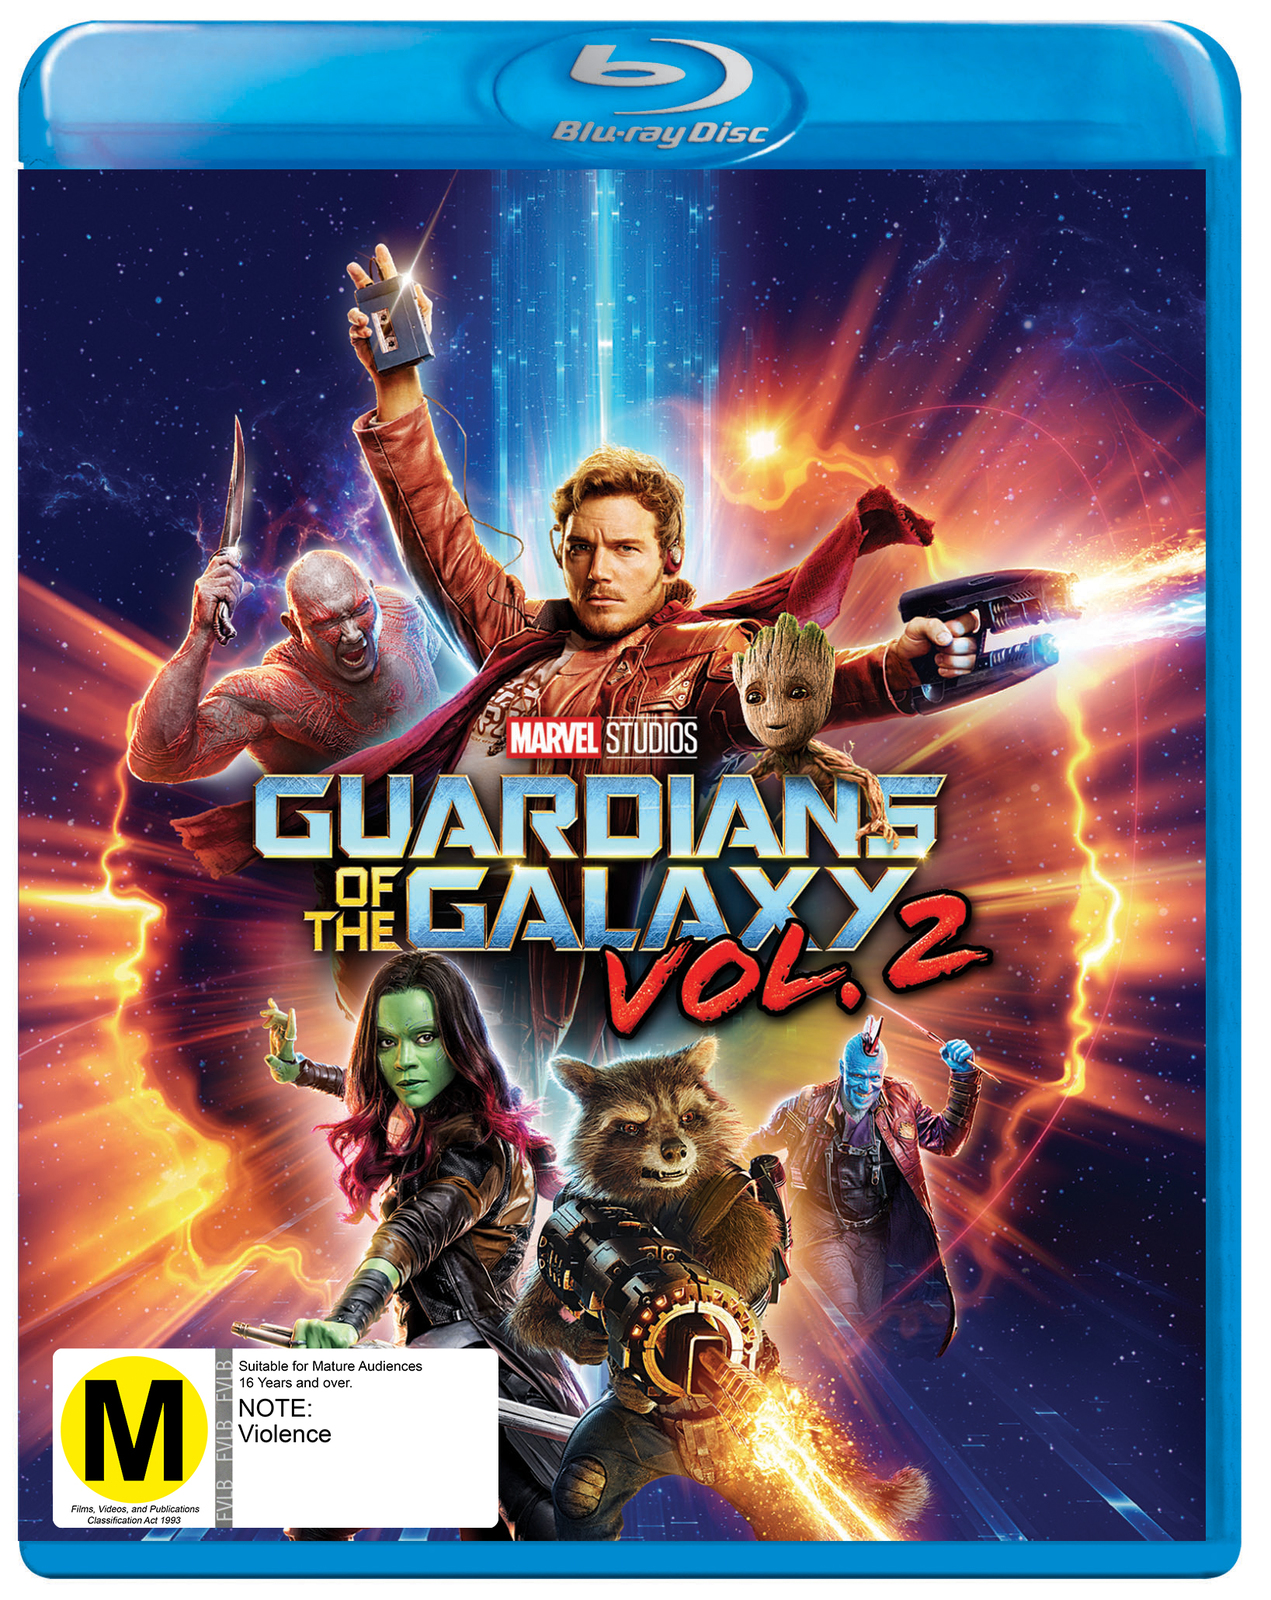 Guardians of the Galaxy Vol. 2 on Blu-ray image